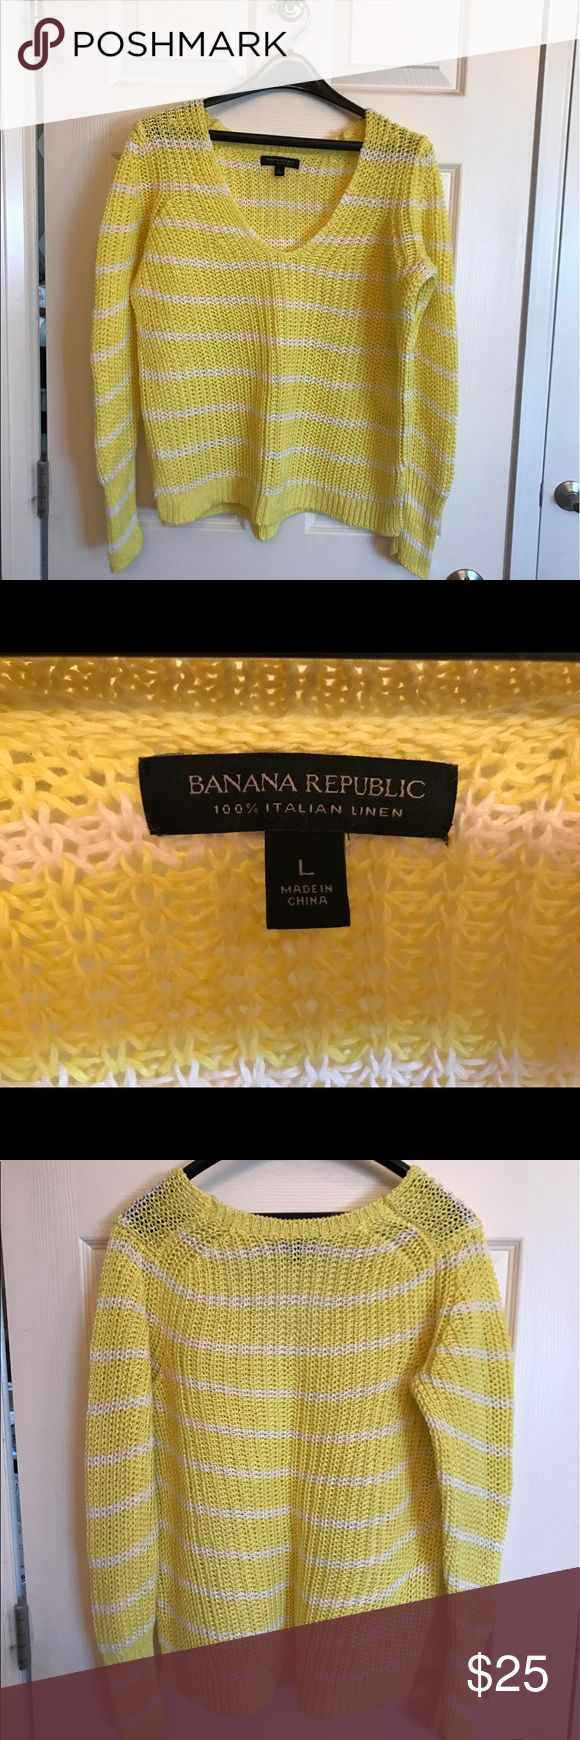 Women's Banana Republic open weave linen sweater This open weave linen sweater from Banana Republic is a great piece for spring and summer.  It is nice and lightweight and makes an excellent layering piece.  Worn one time and in excellent condition! Banana Republic Sweaters V-Necks